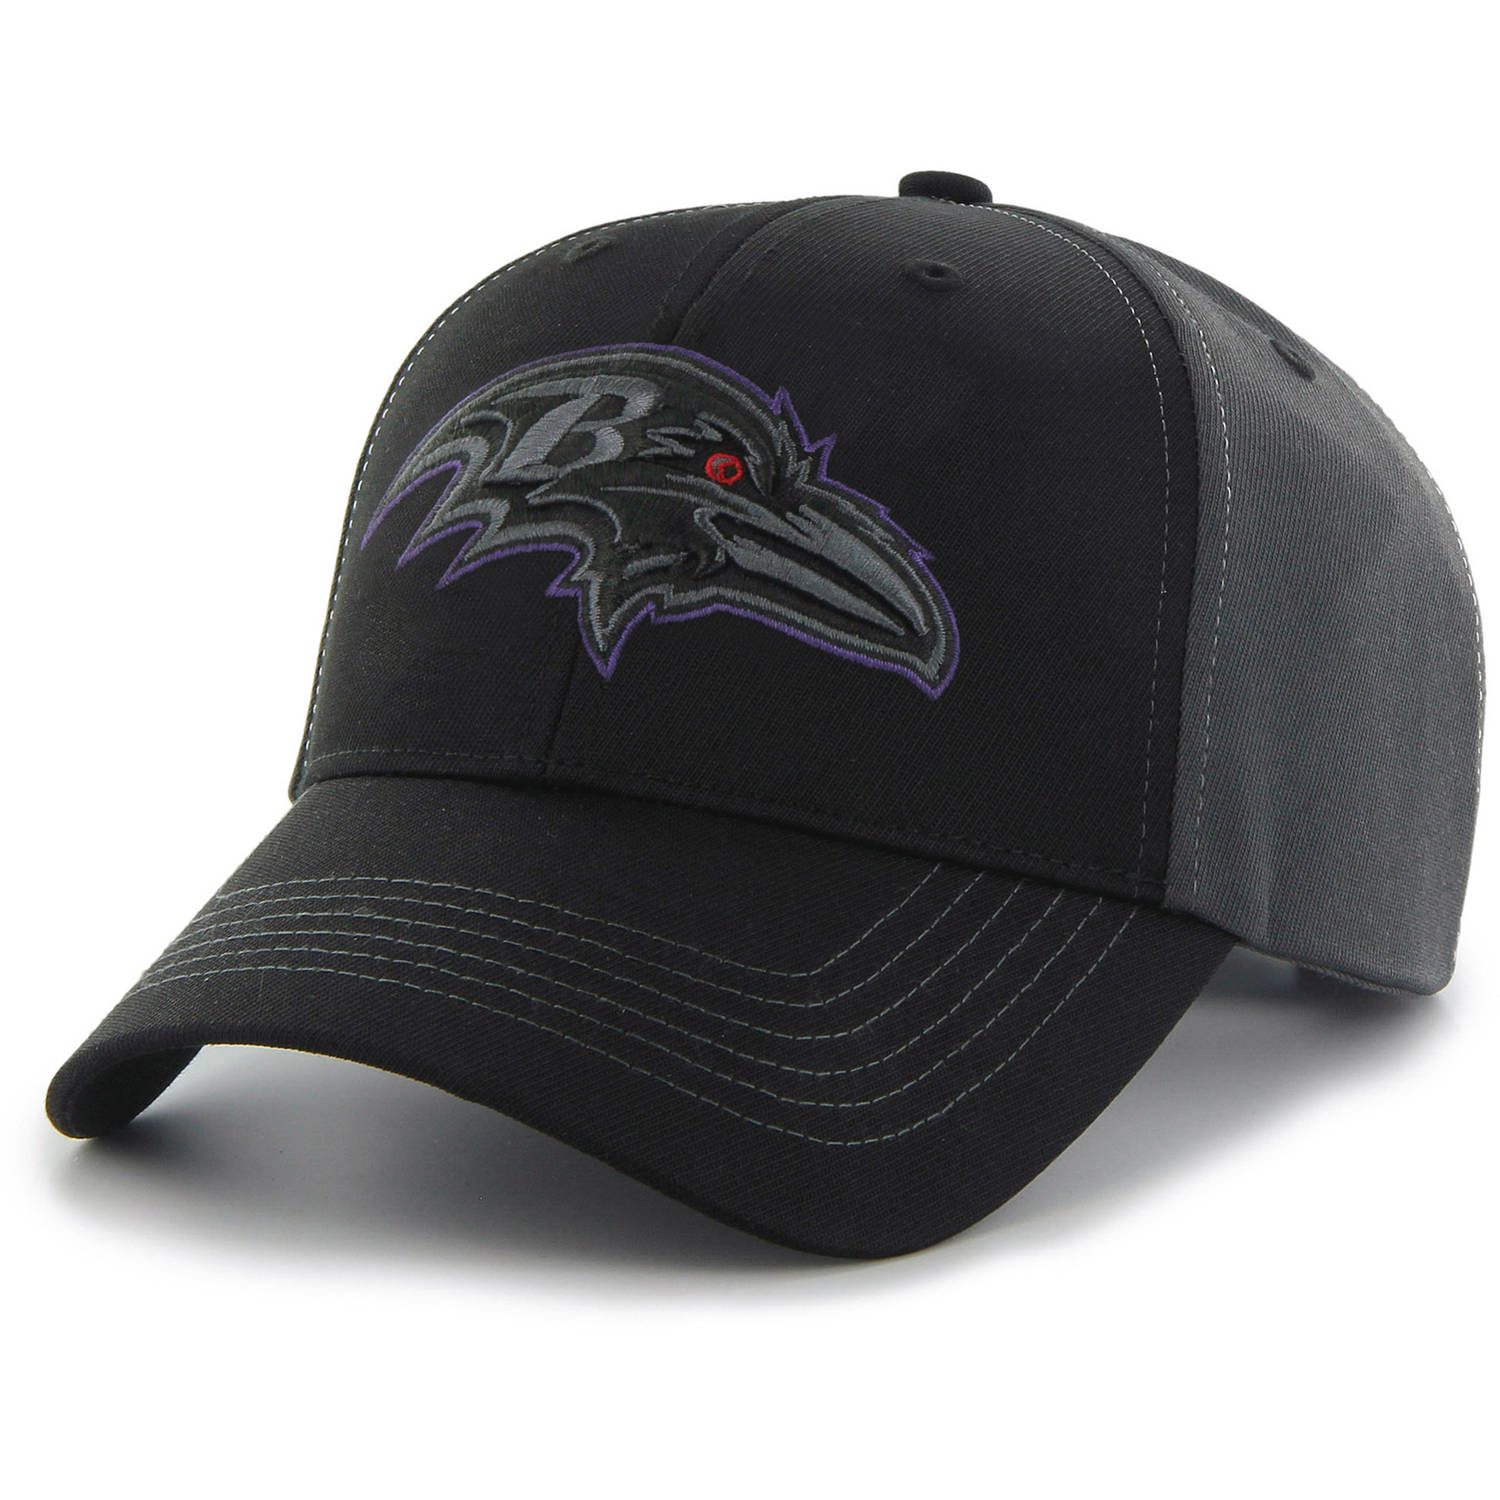 NFL Baltimore Ravens Mass Blackball Cap - Fan Favorite